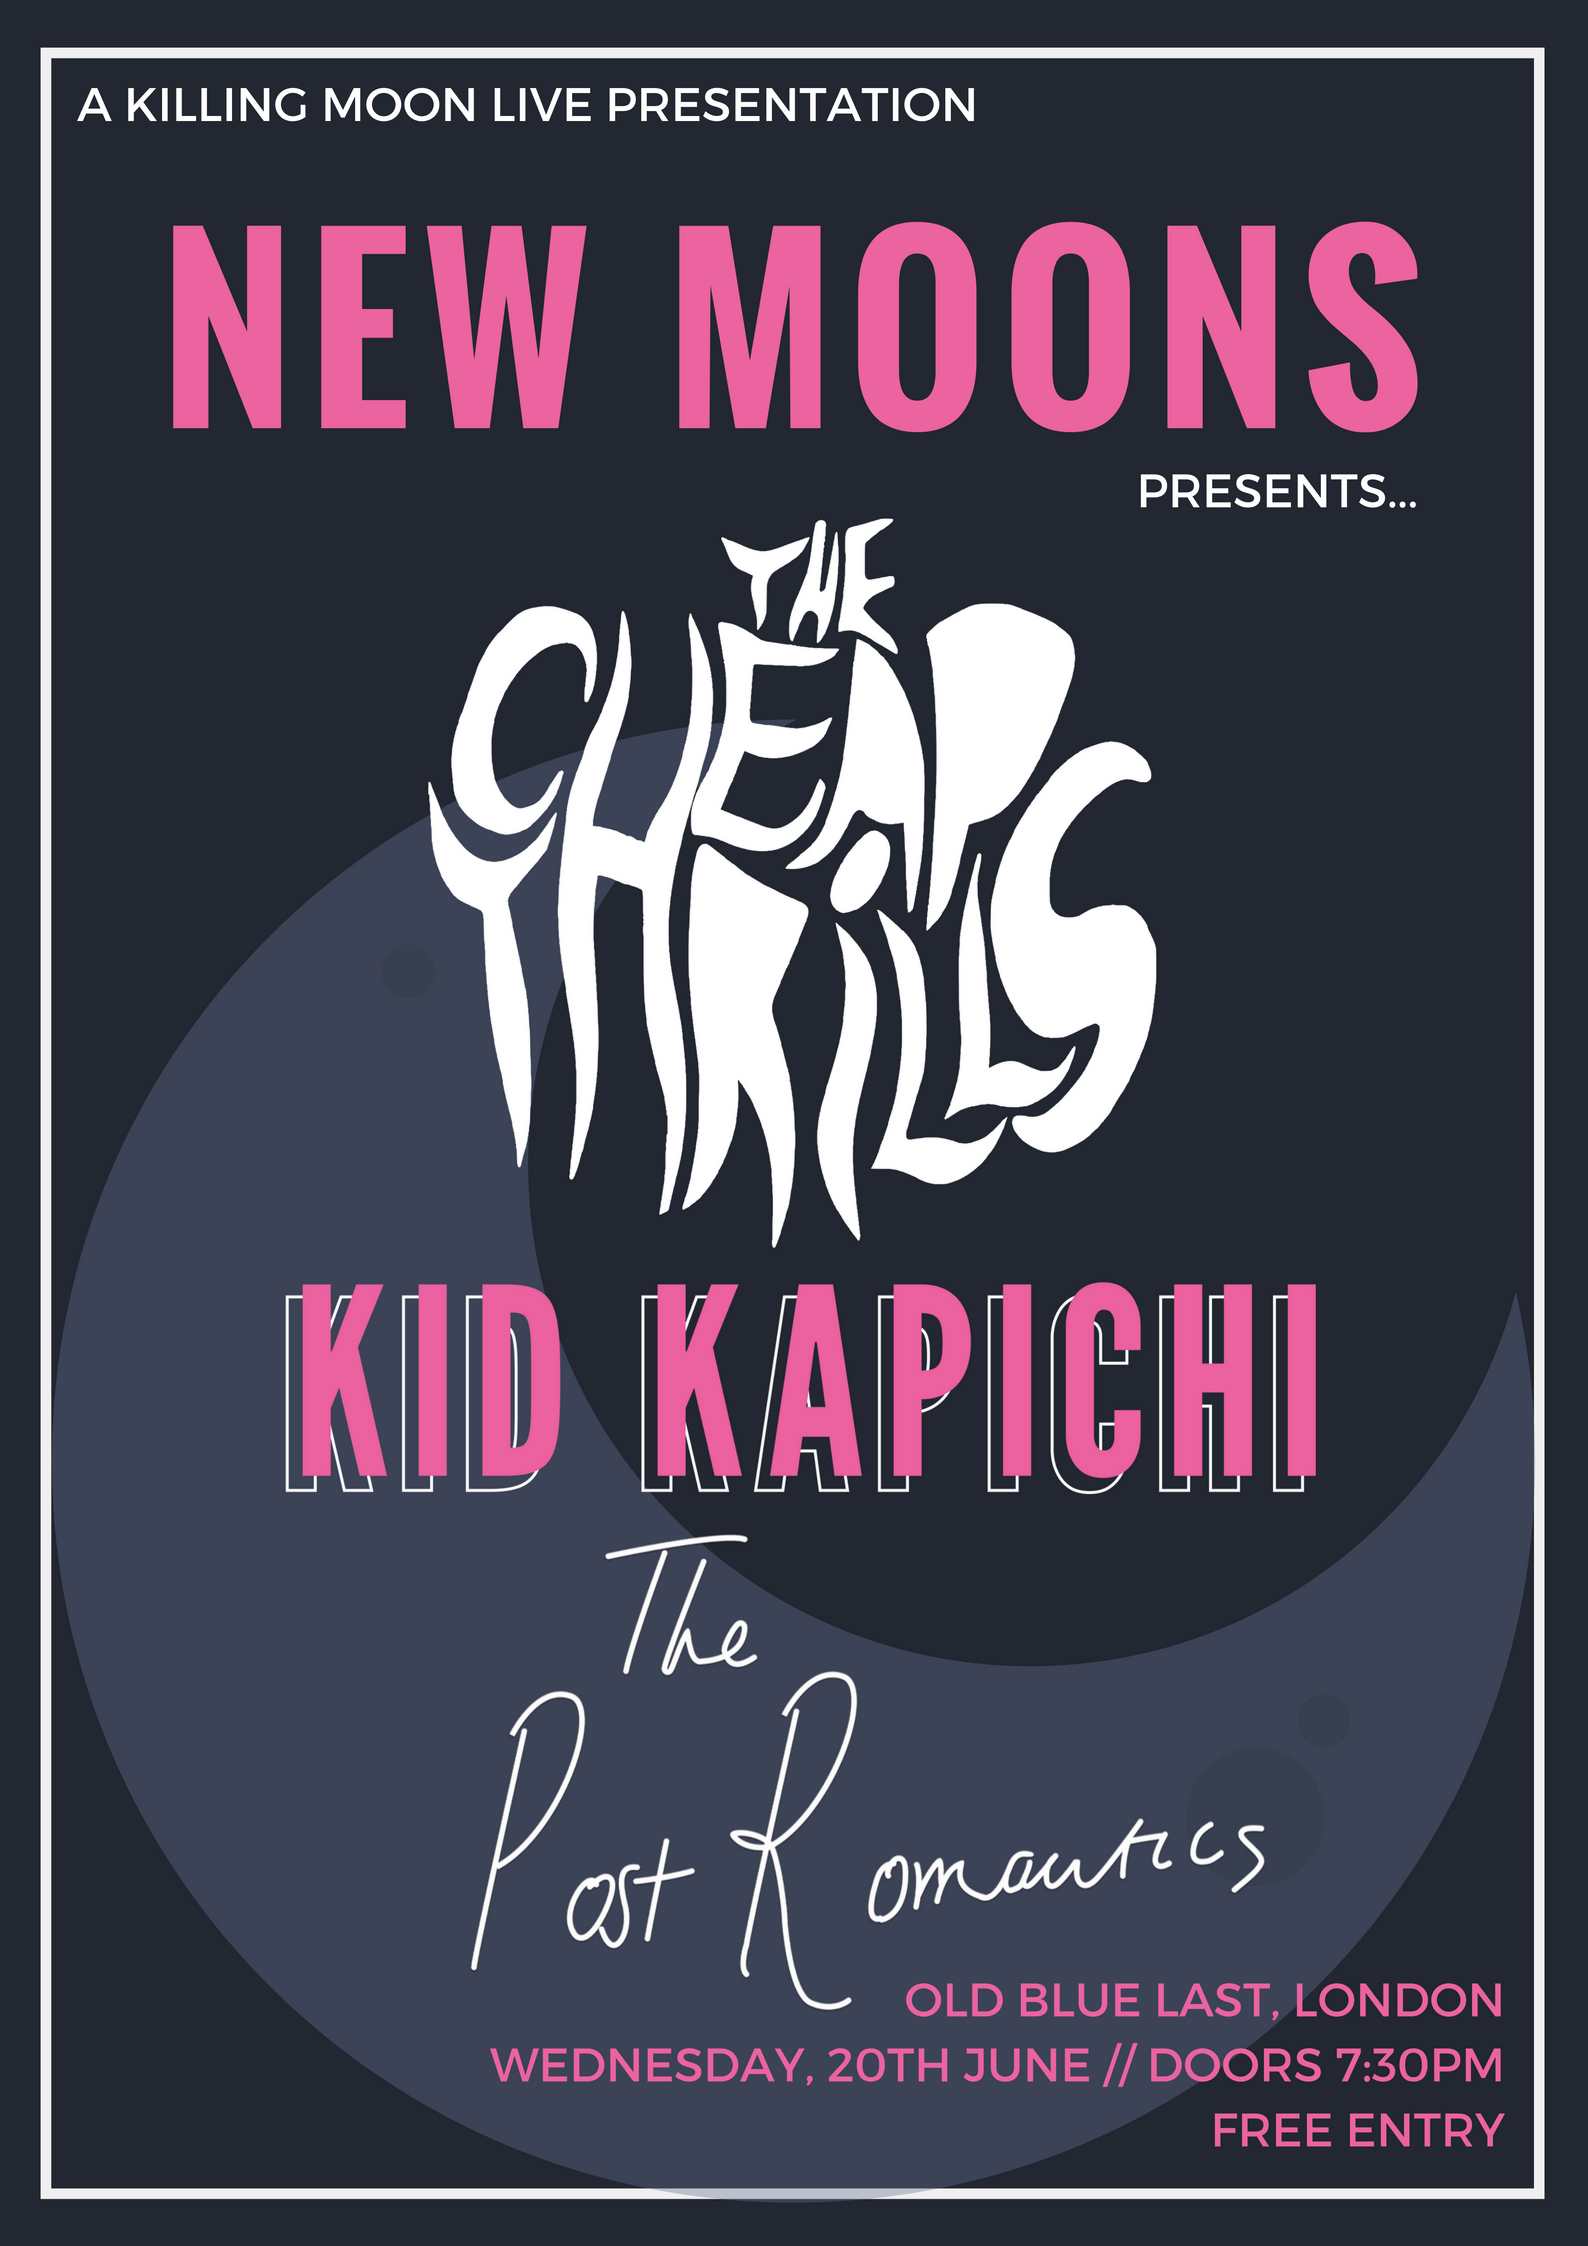 NEW MOONS POSTER